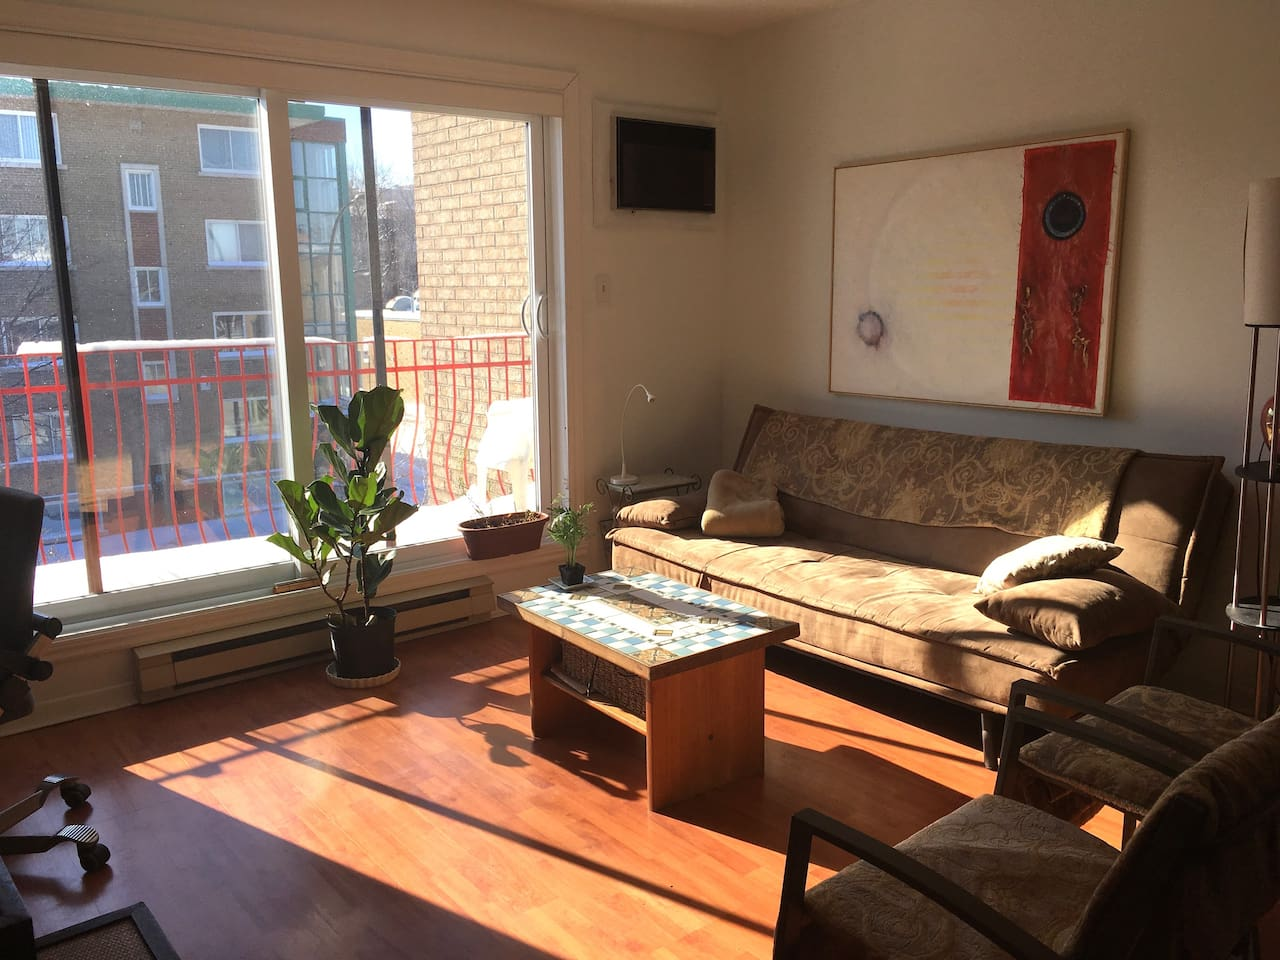 very sunny, spacious living with good shades